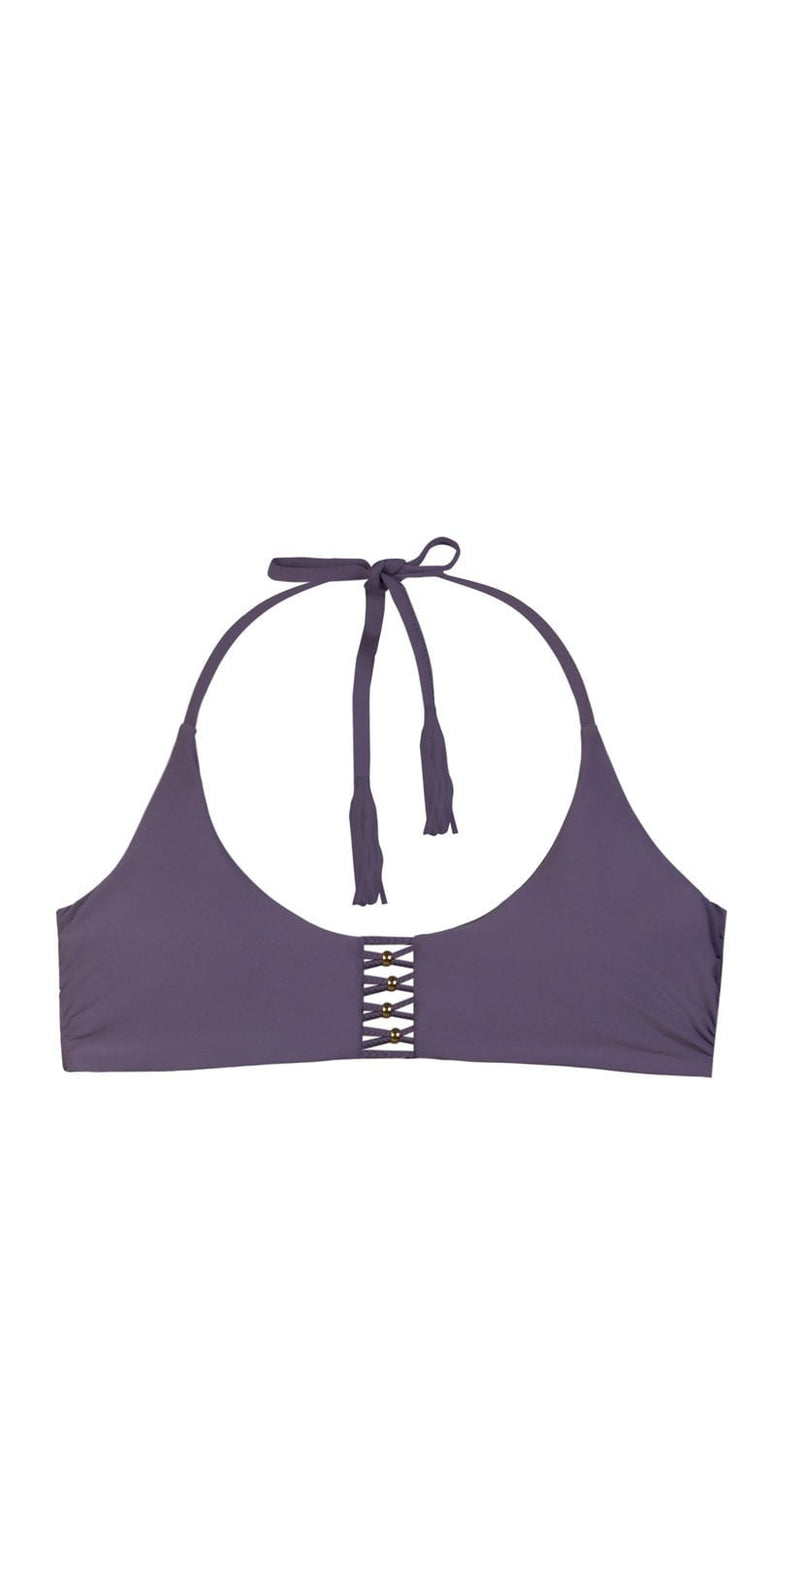 PilyQ Amethyst Braided Zen Top AME-177H: